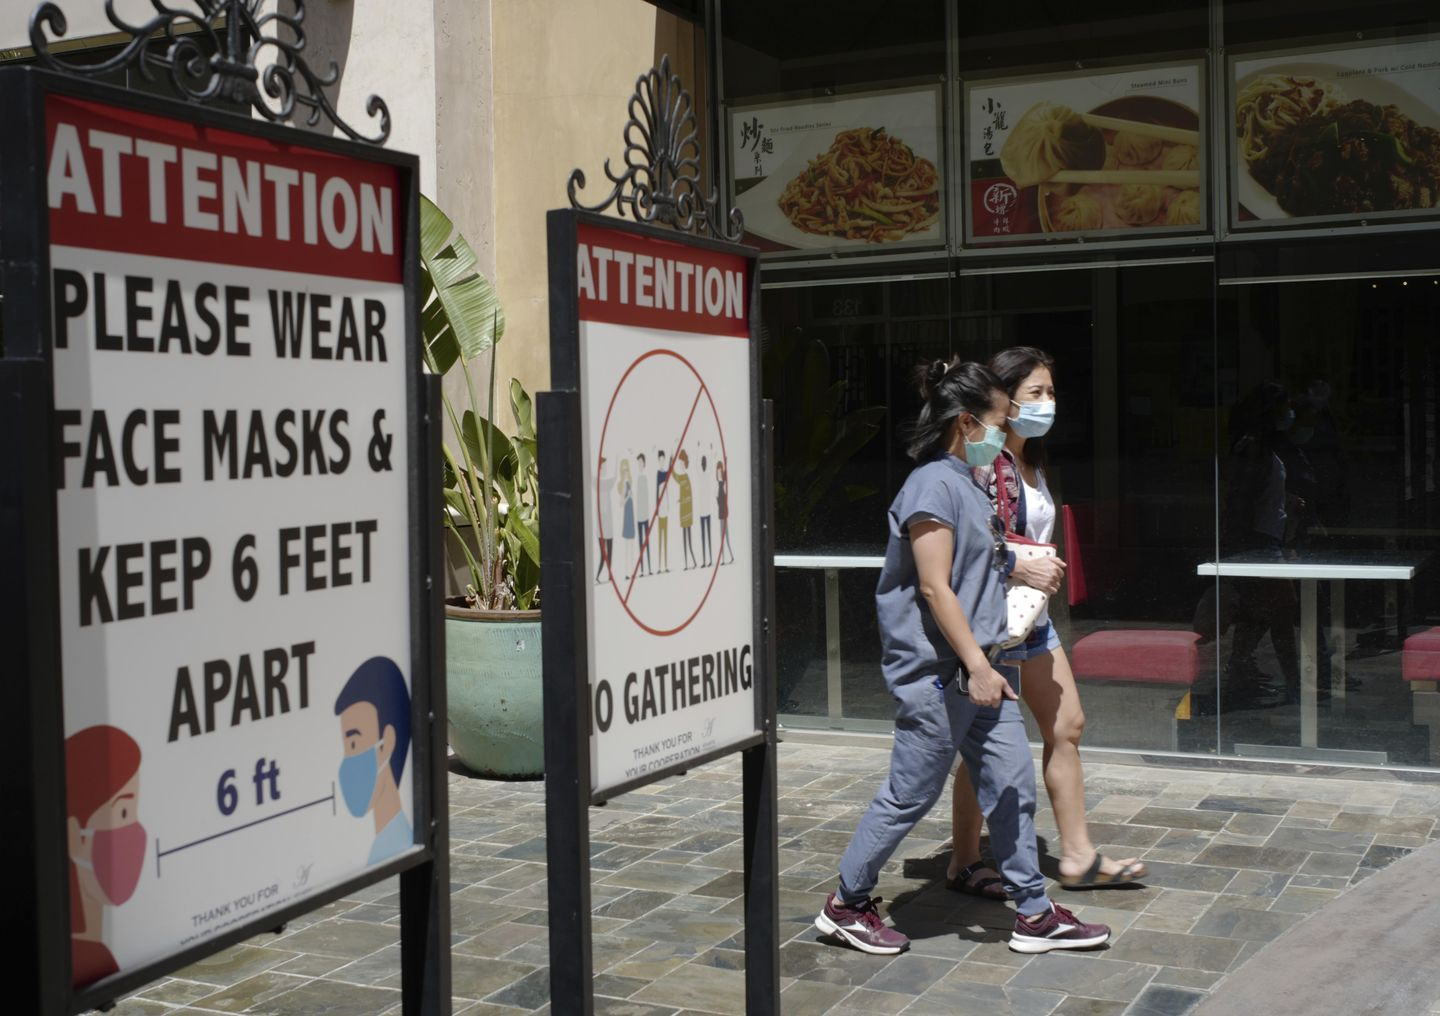 Los Angeles County restores indoor mask mandate for all